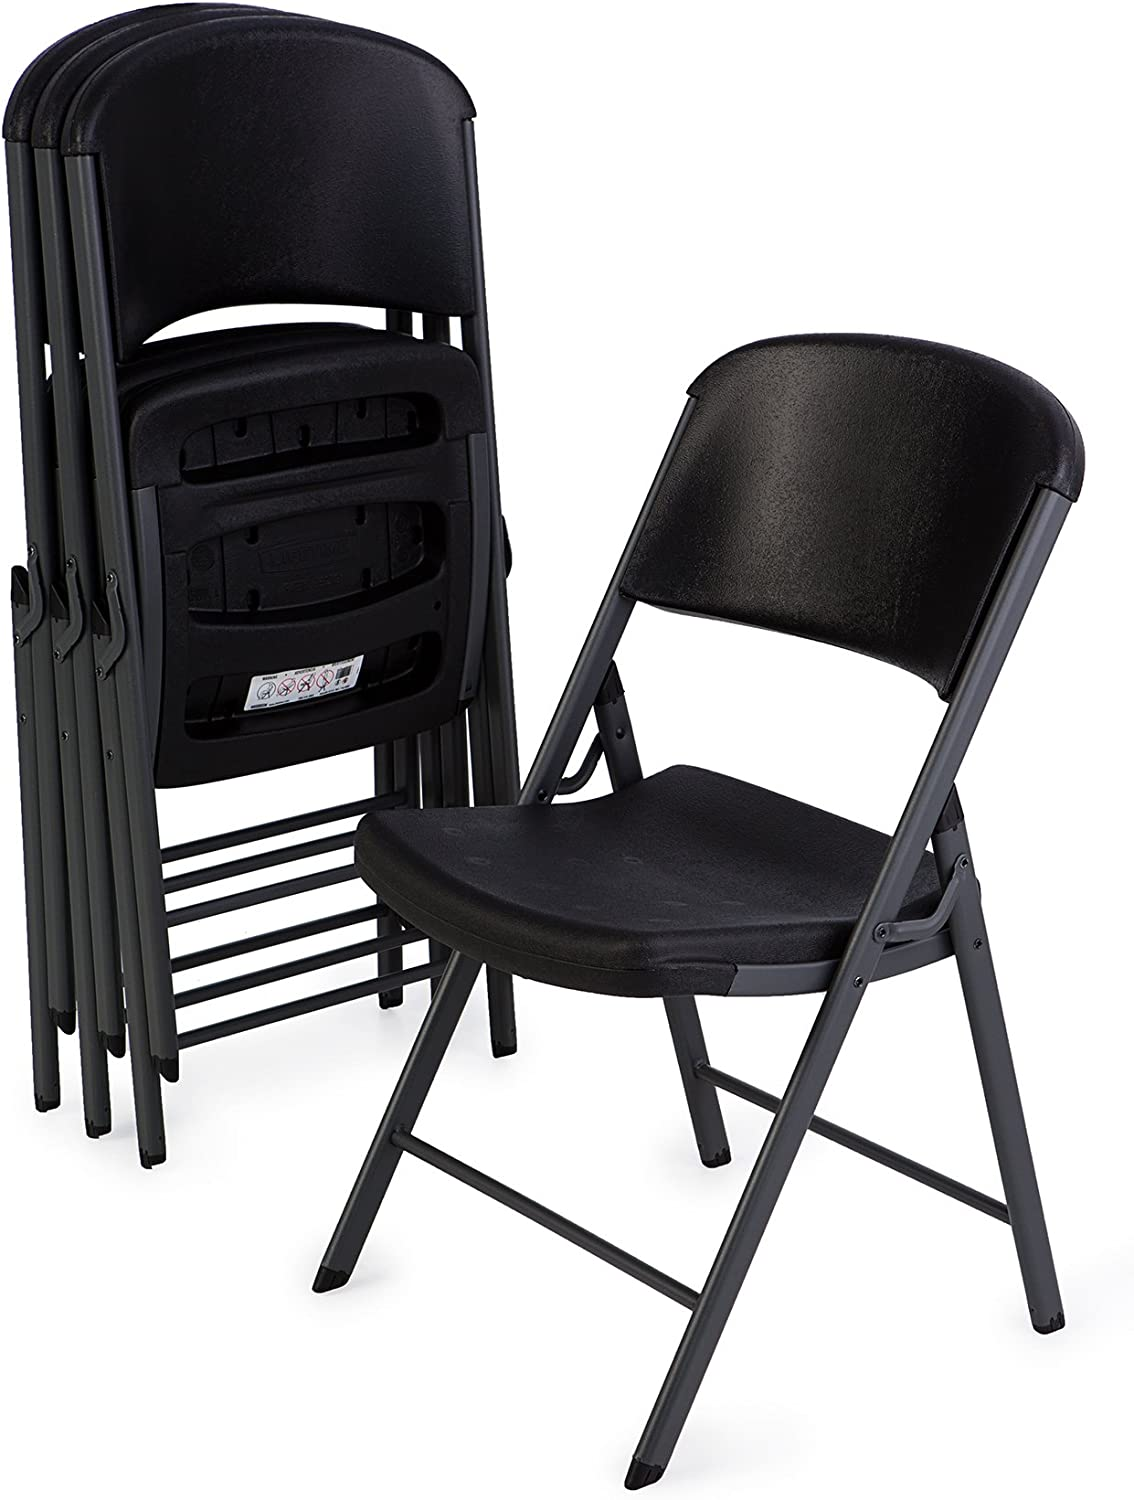 Lifetime 80187 Classic Commercial Grade Folding Chair, Black with Gray Frame, 4 Pack